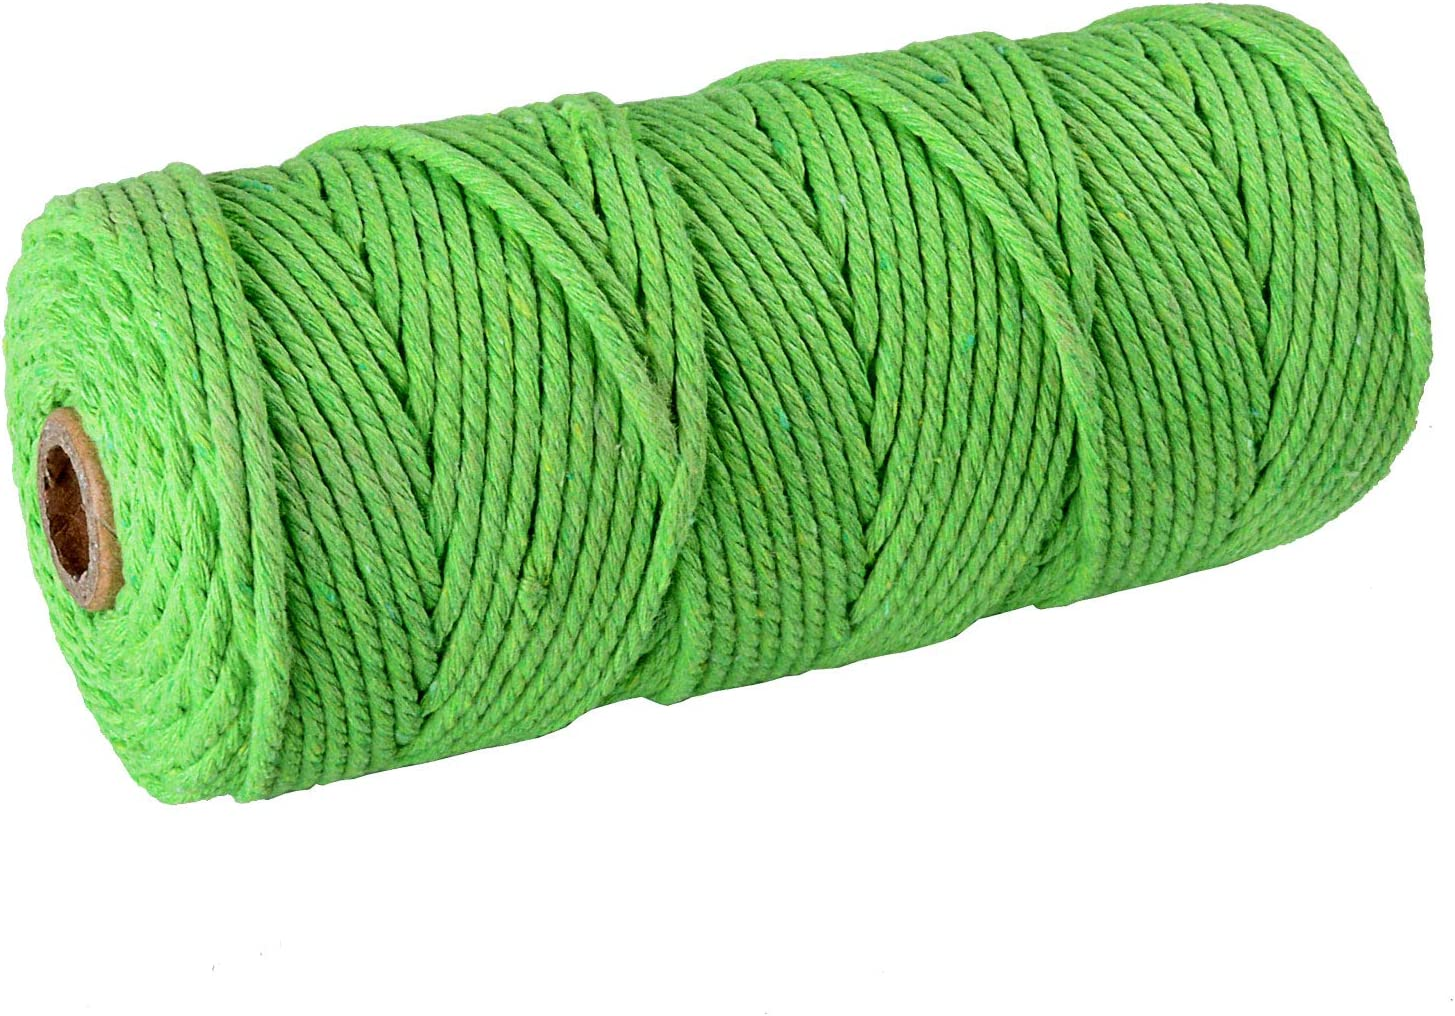 SUNTQ Macrame Cord 4-Strand Twisted Polyester Cotton Soft Cotton Rope for Handmade Plant Hanger,Wall Hanging,Crafts,Knitting,Decorative Projects Apple Green Color Cotton String 3mm x 328 Feet